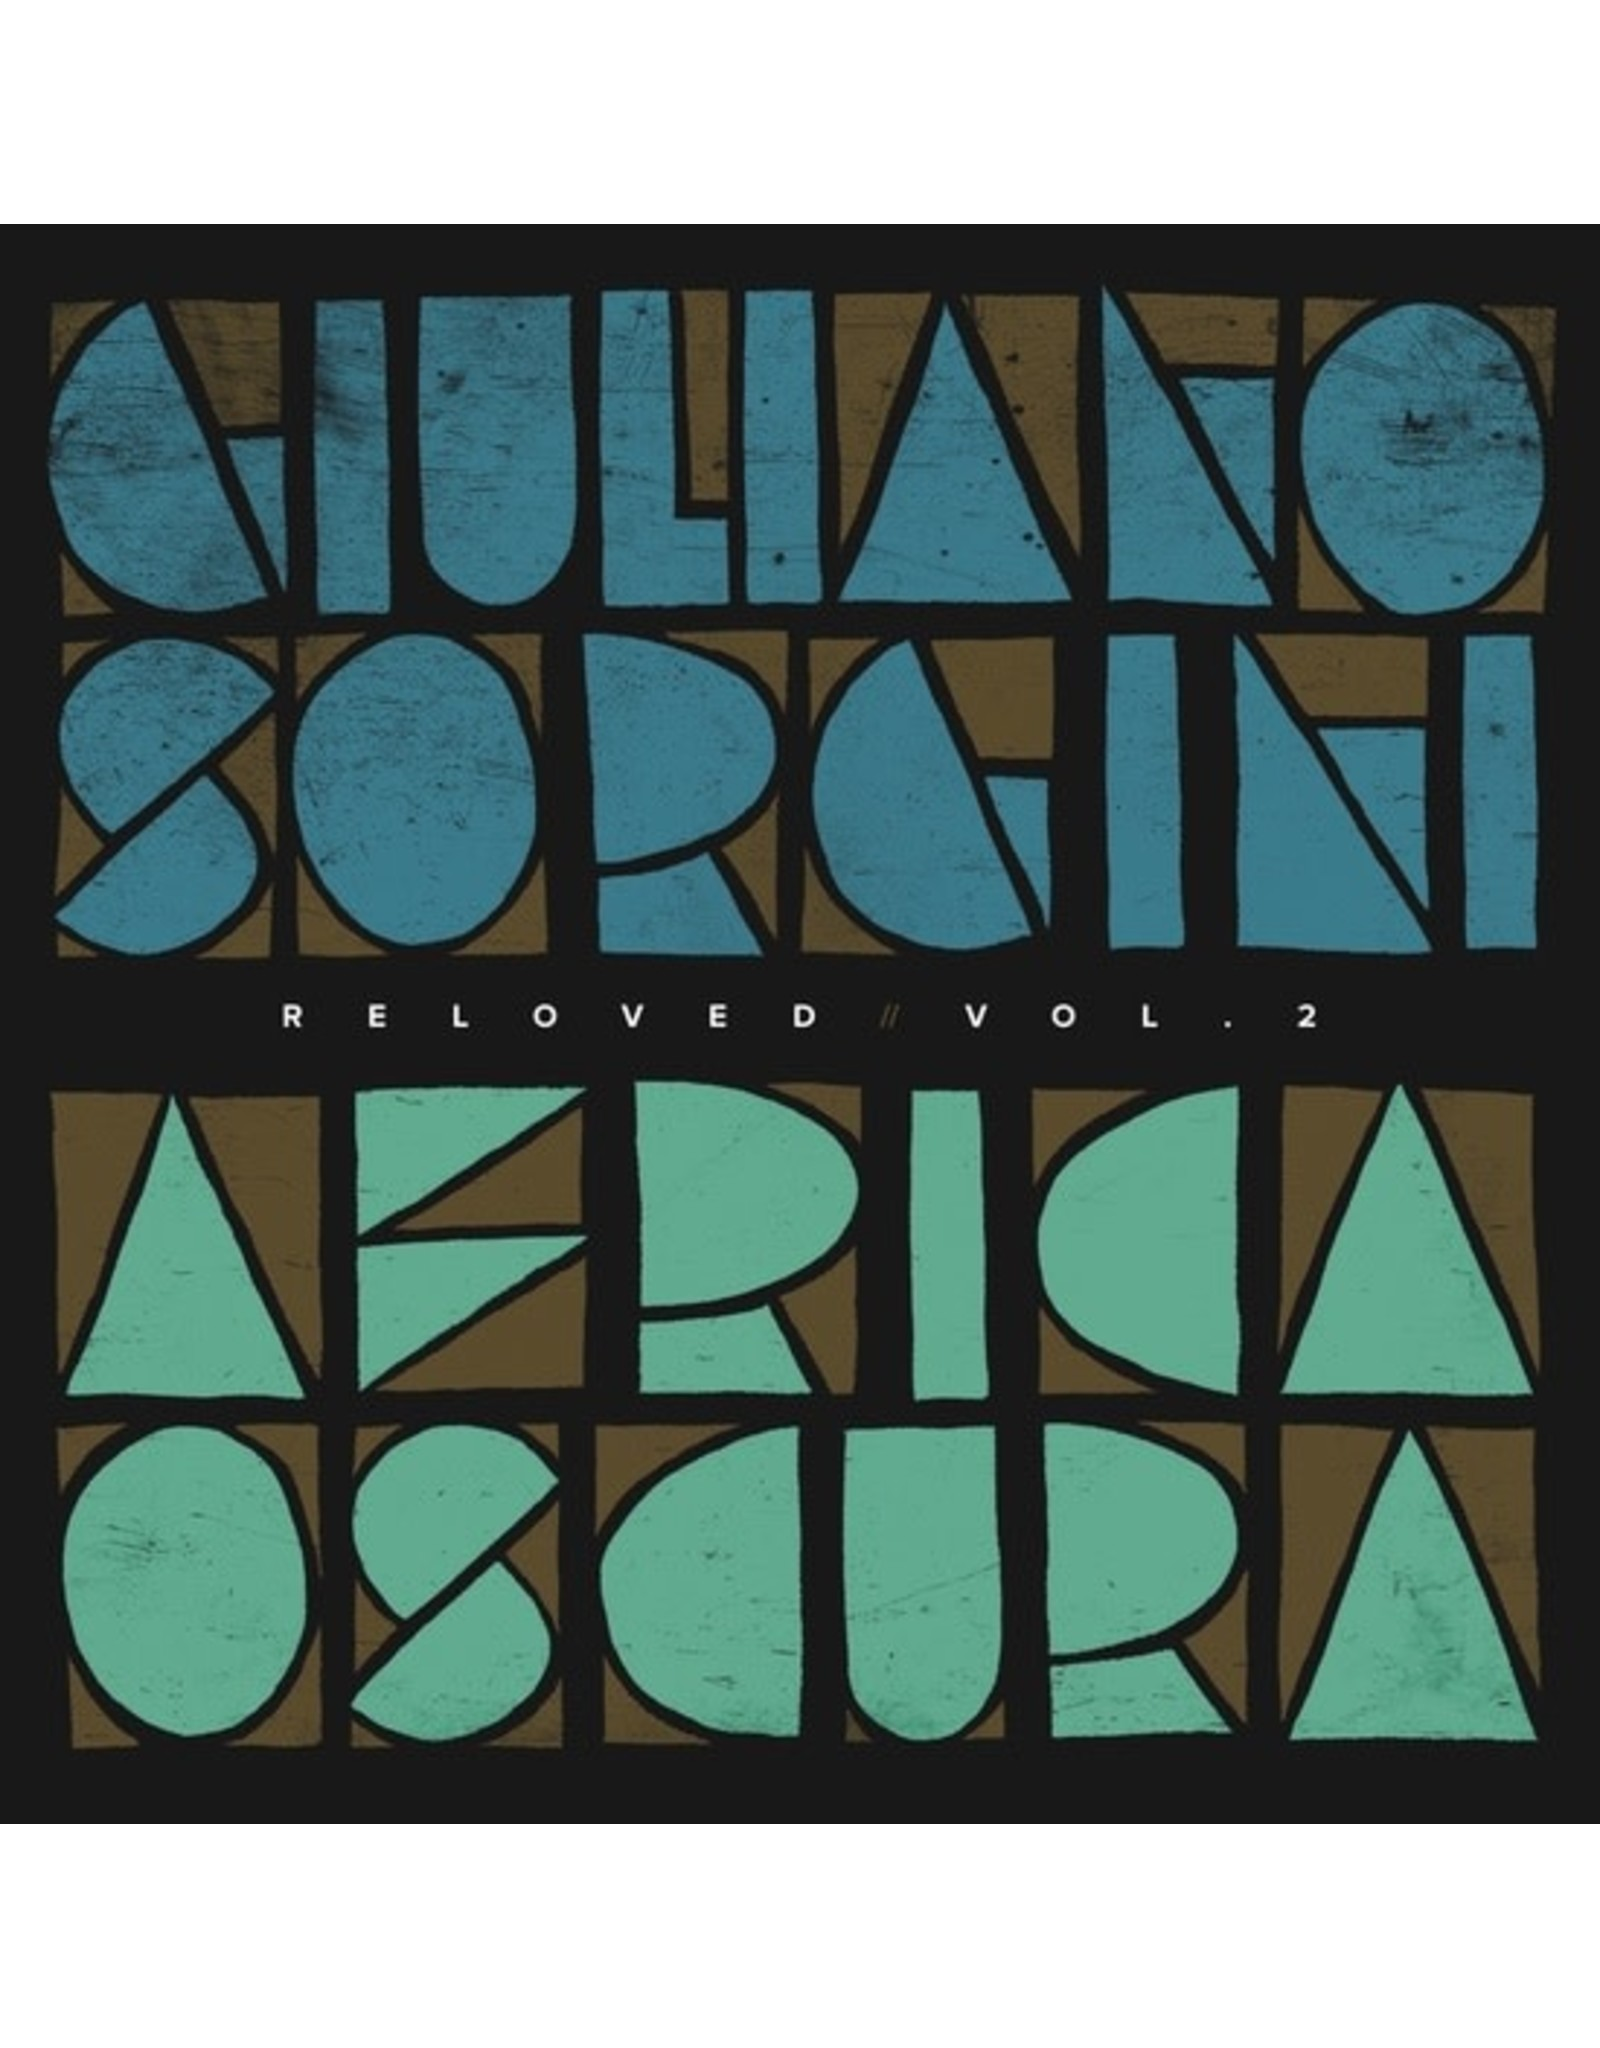 """New Vinyl Various - Africa Oscura Reloved Vol. 2 12"""""""